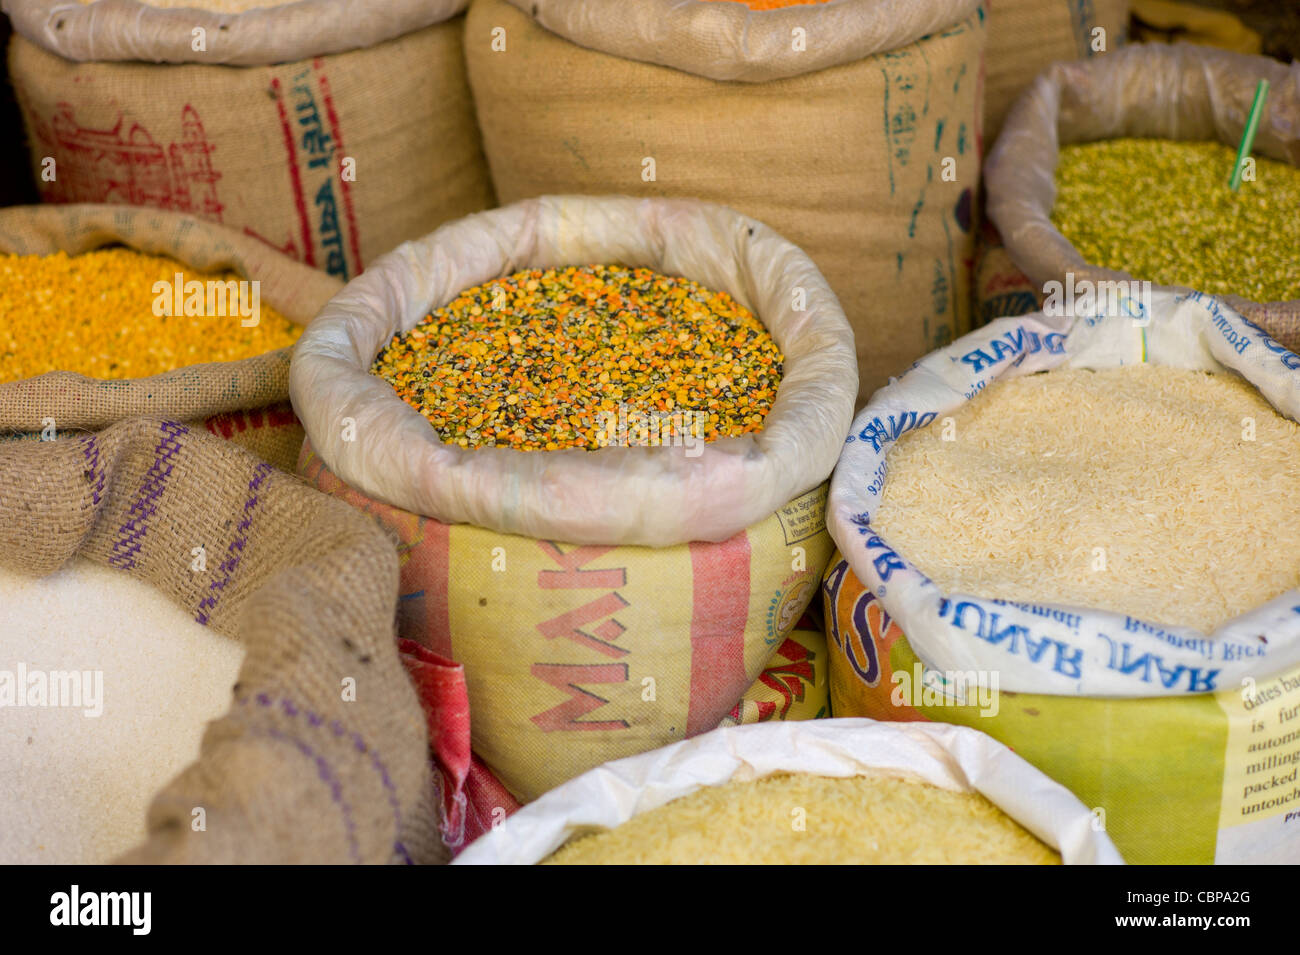 Spices and pulses including lentils and rice on sale in old town market Udaipur, Rajasthan, Western India, - Stock Image